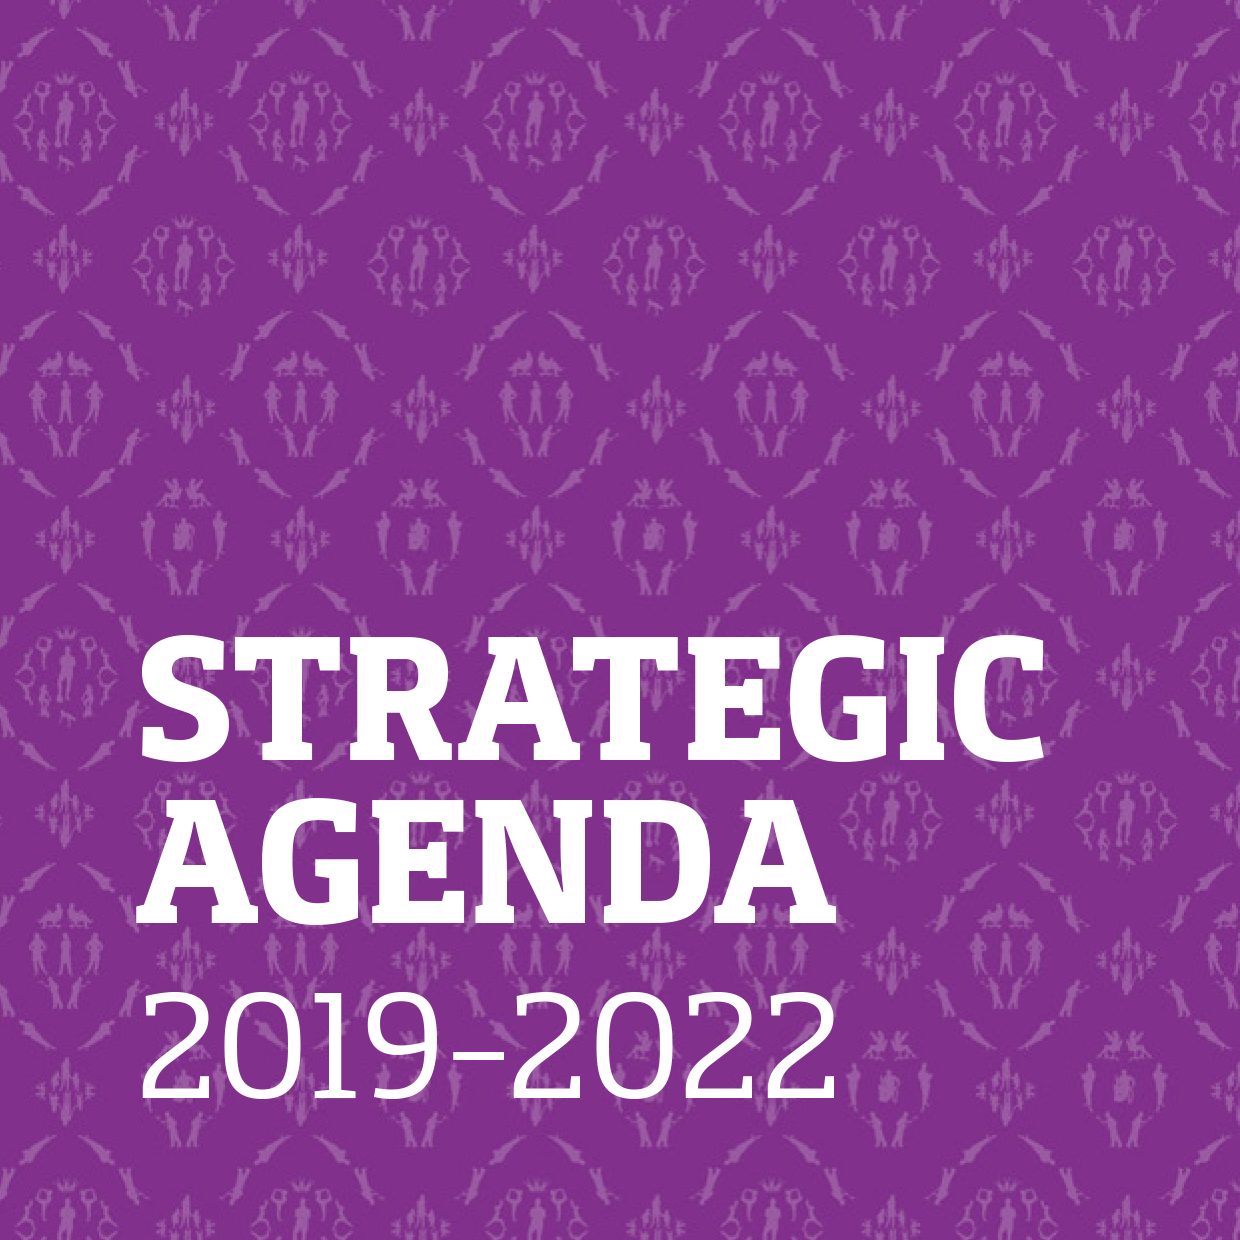 Strategic agenda 2019-2022, miniature